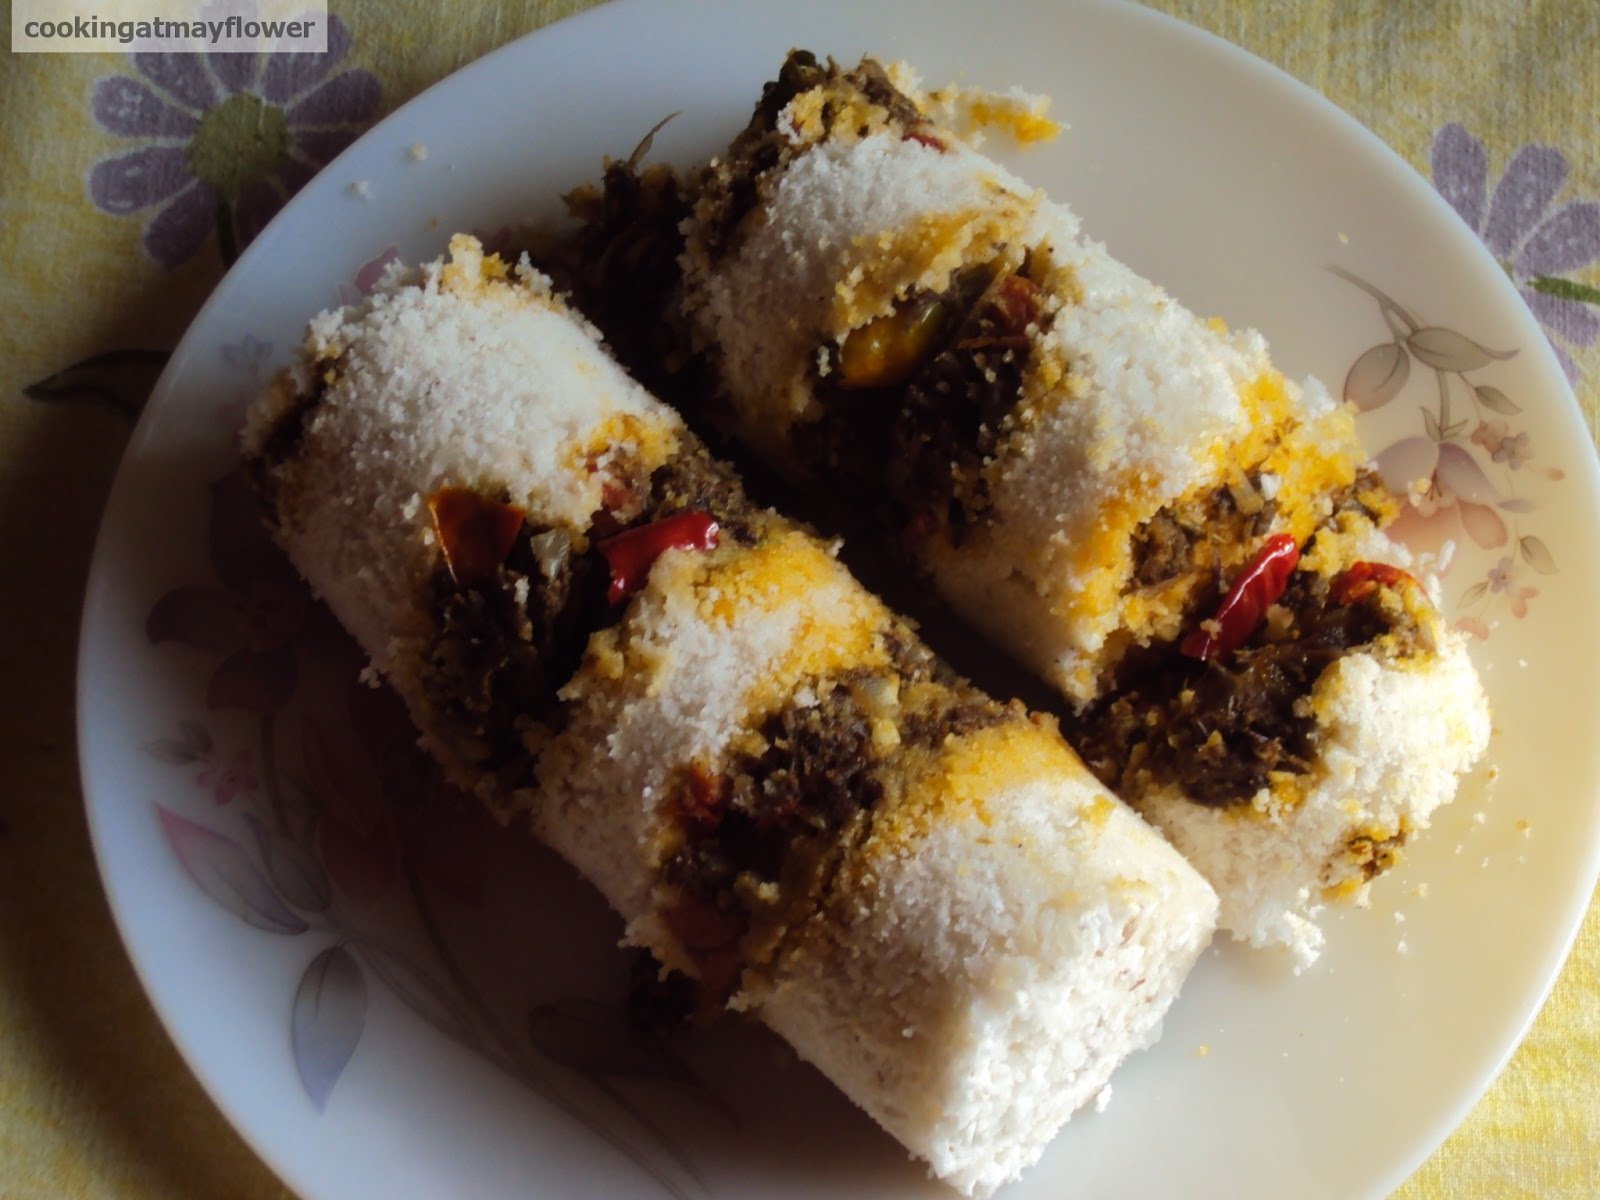 Erachi puttu / Steamed rice flour cake layered with spicy meat mixture.